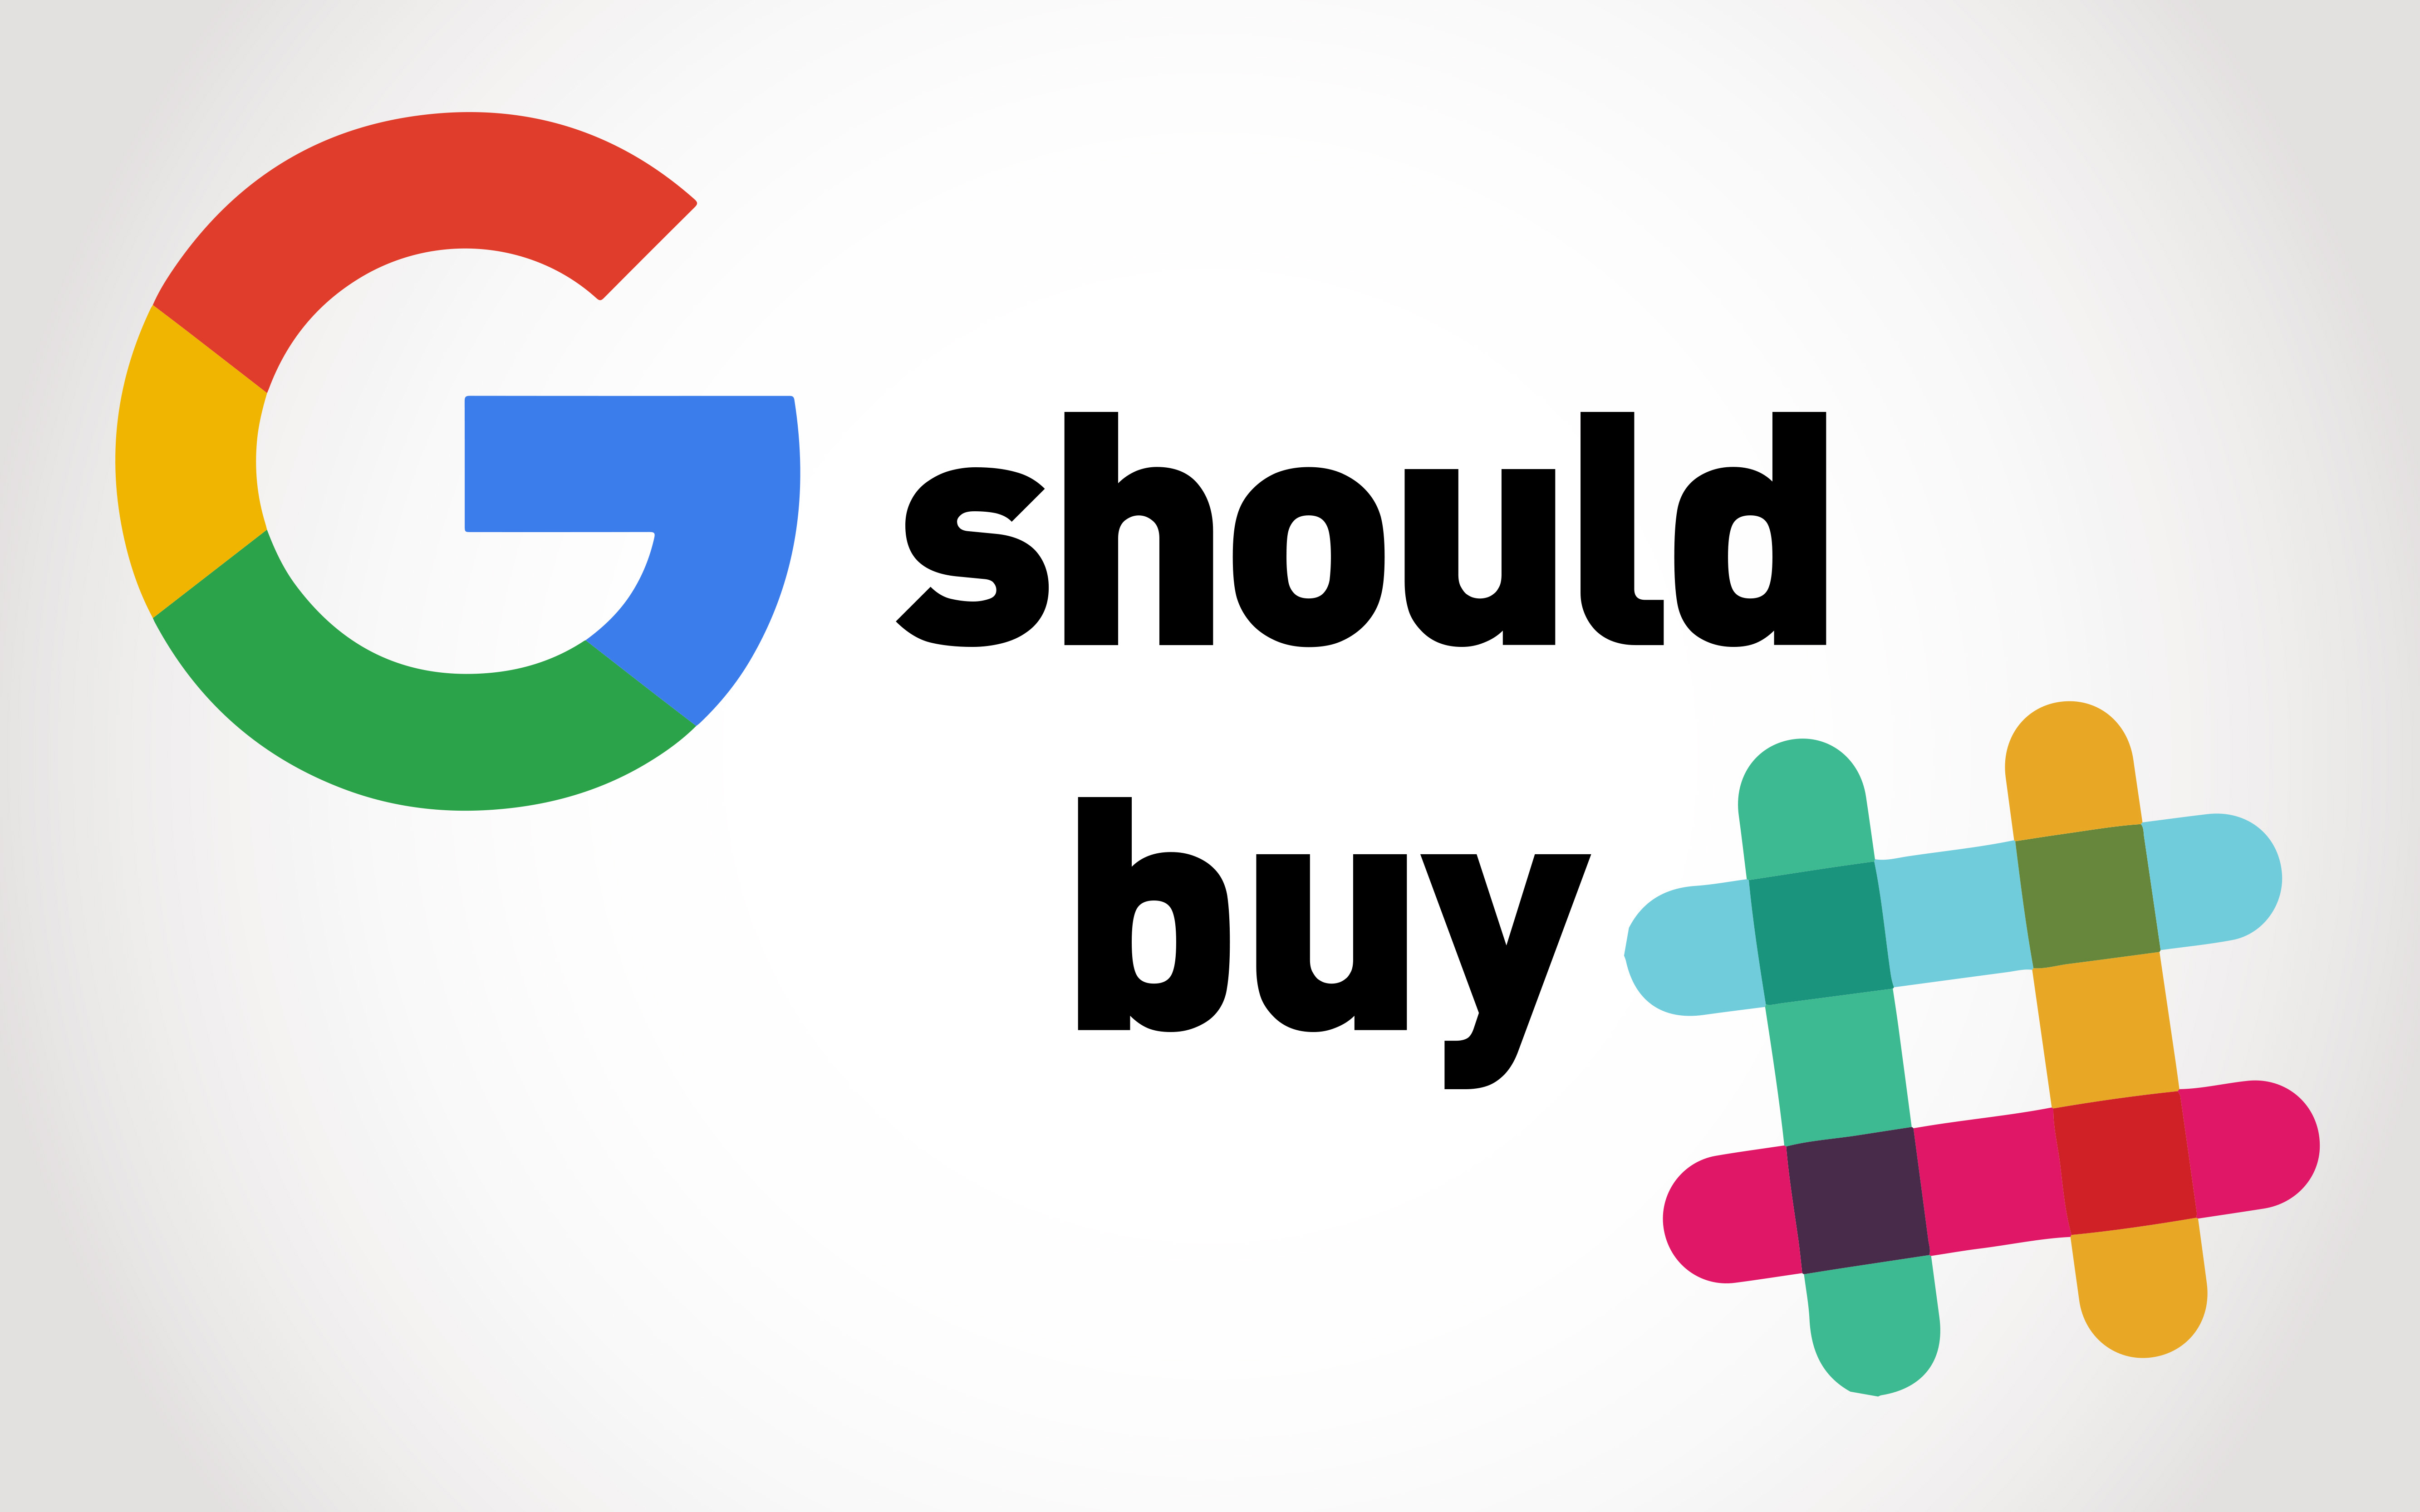 Google should buy Slack